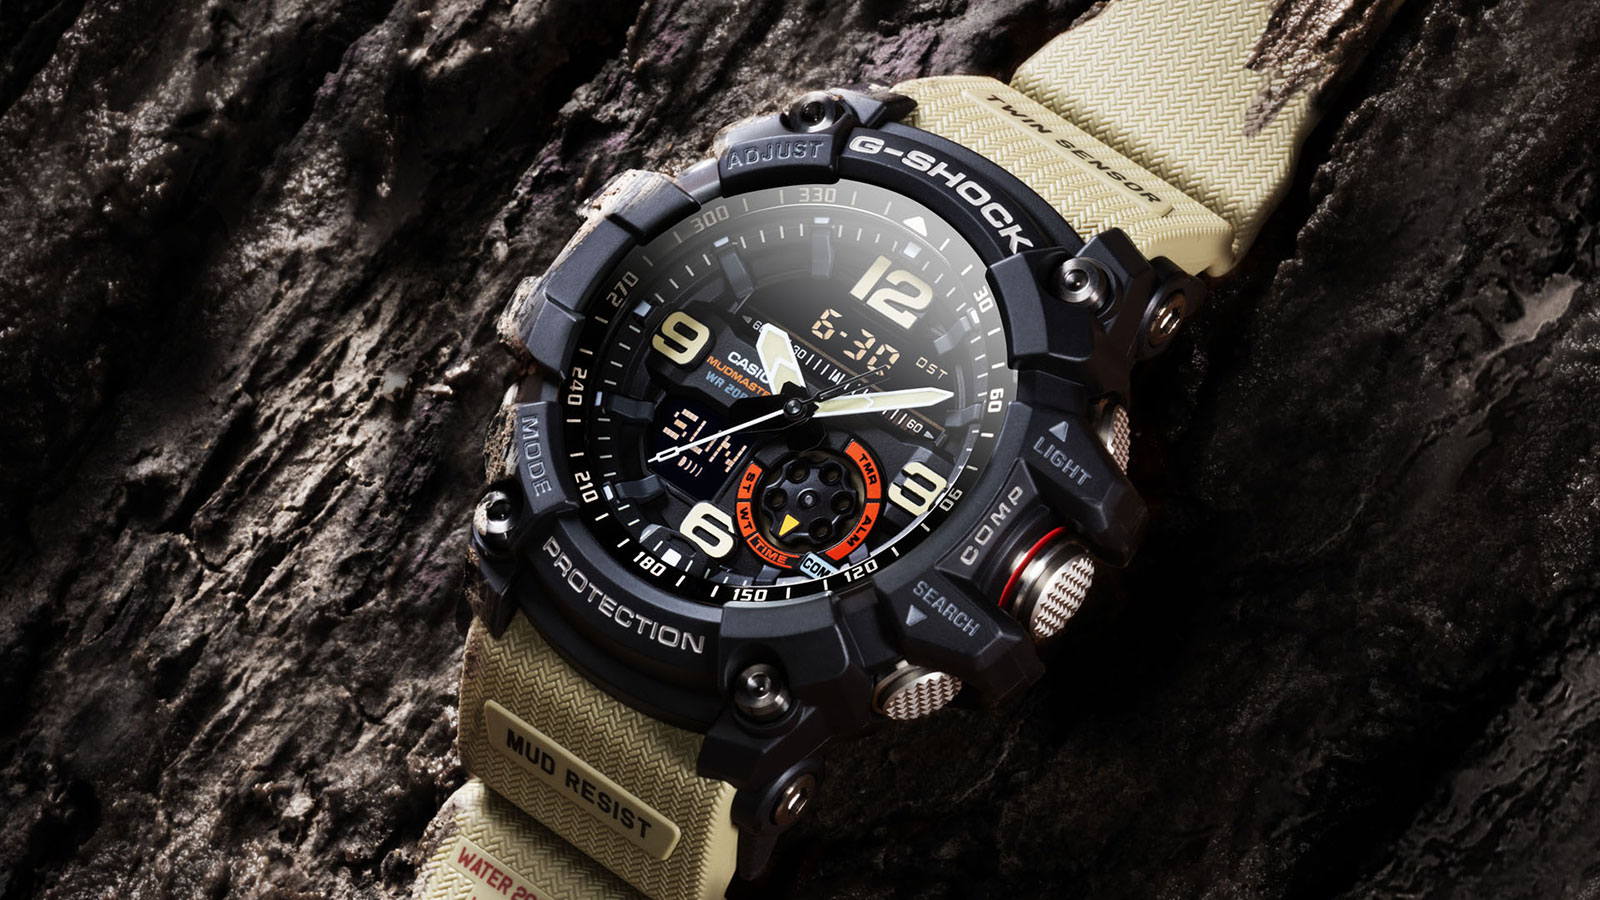 G-SHOCK MUDMASTER GG1000 WATCH